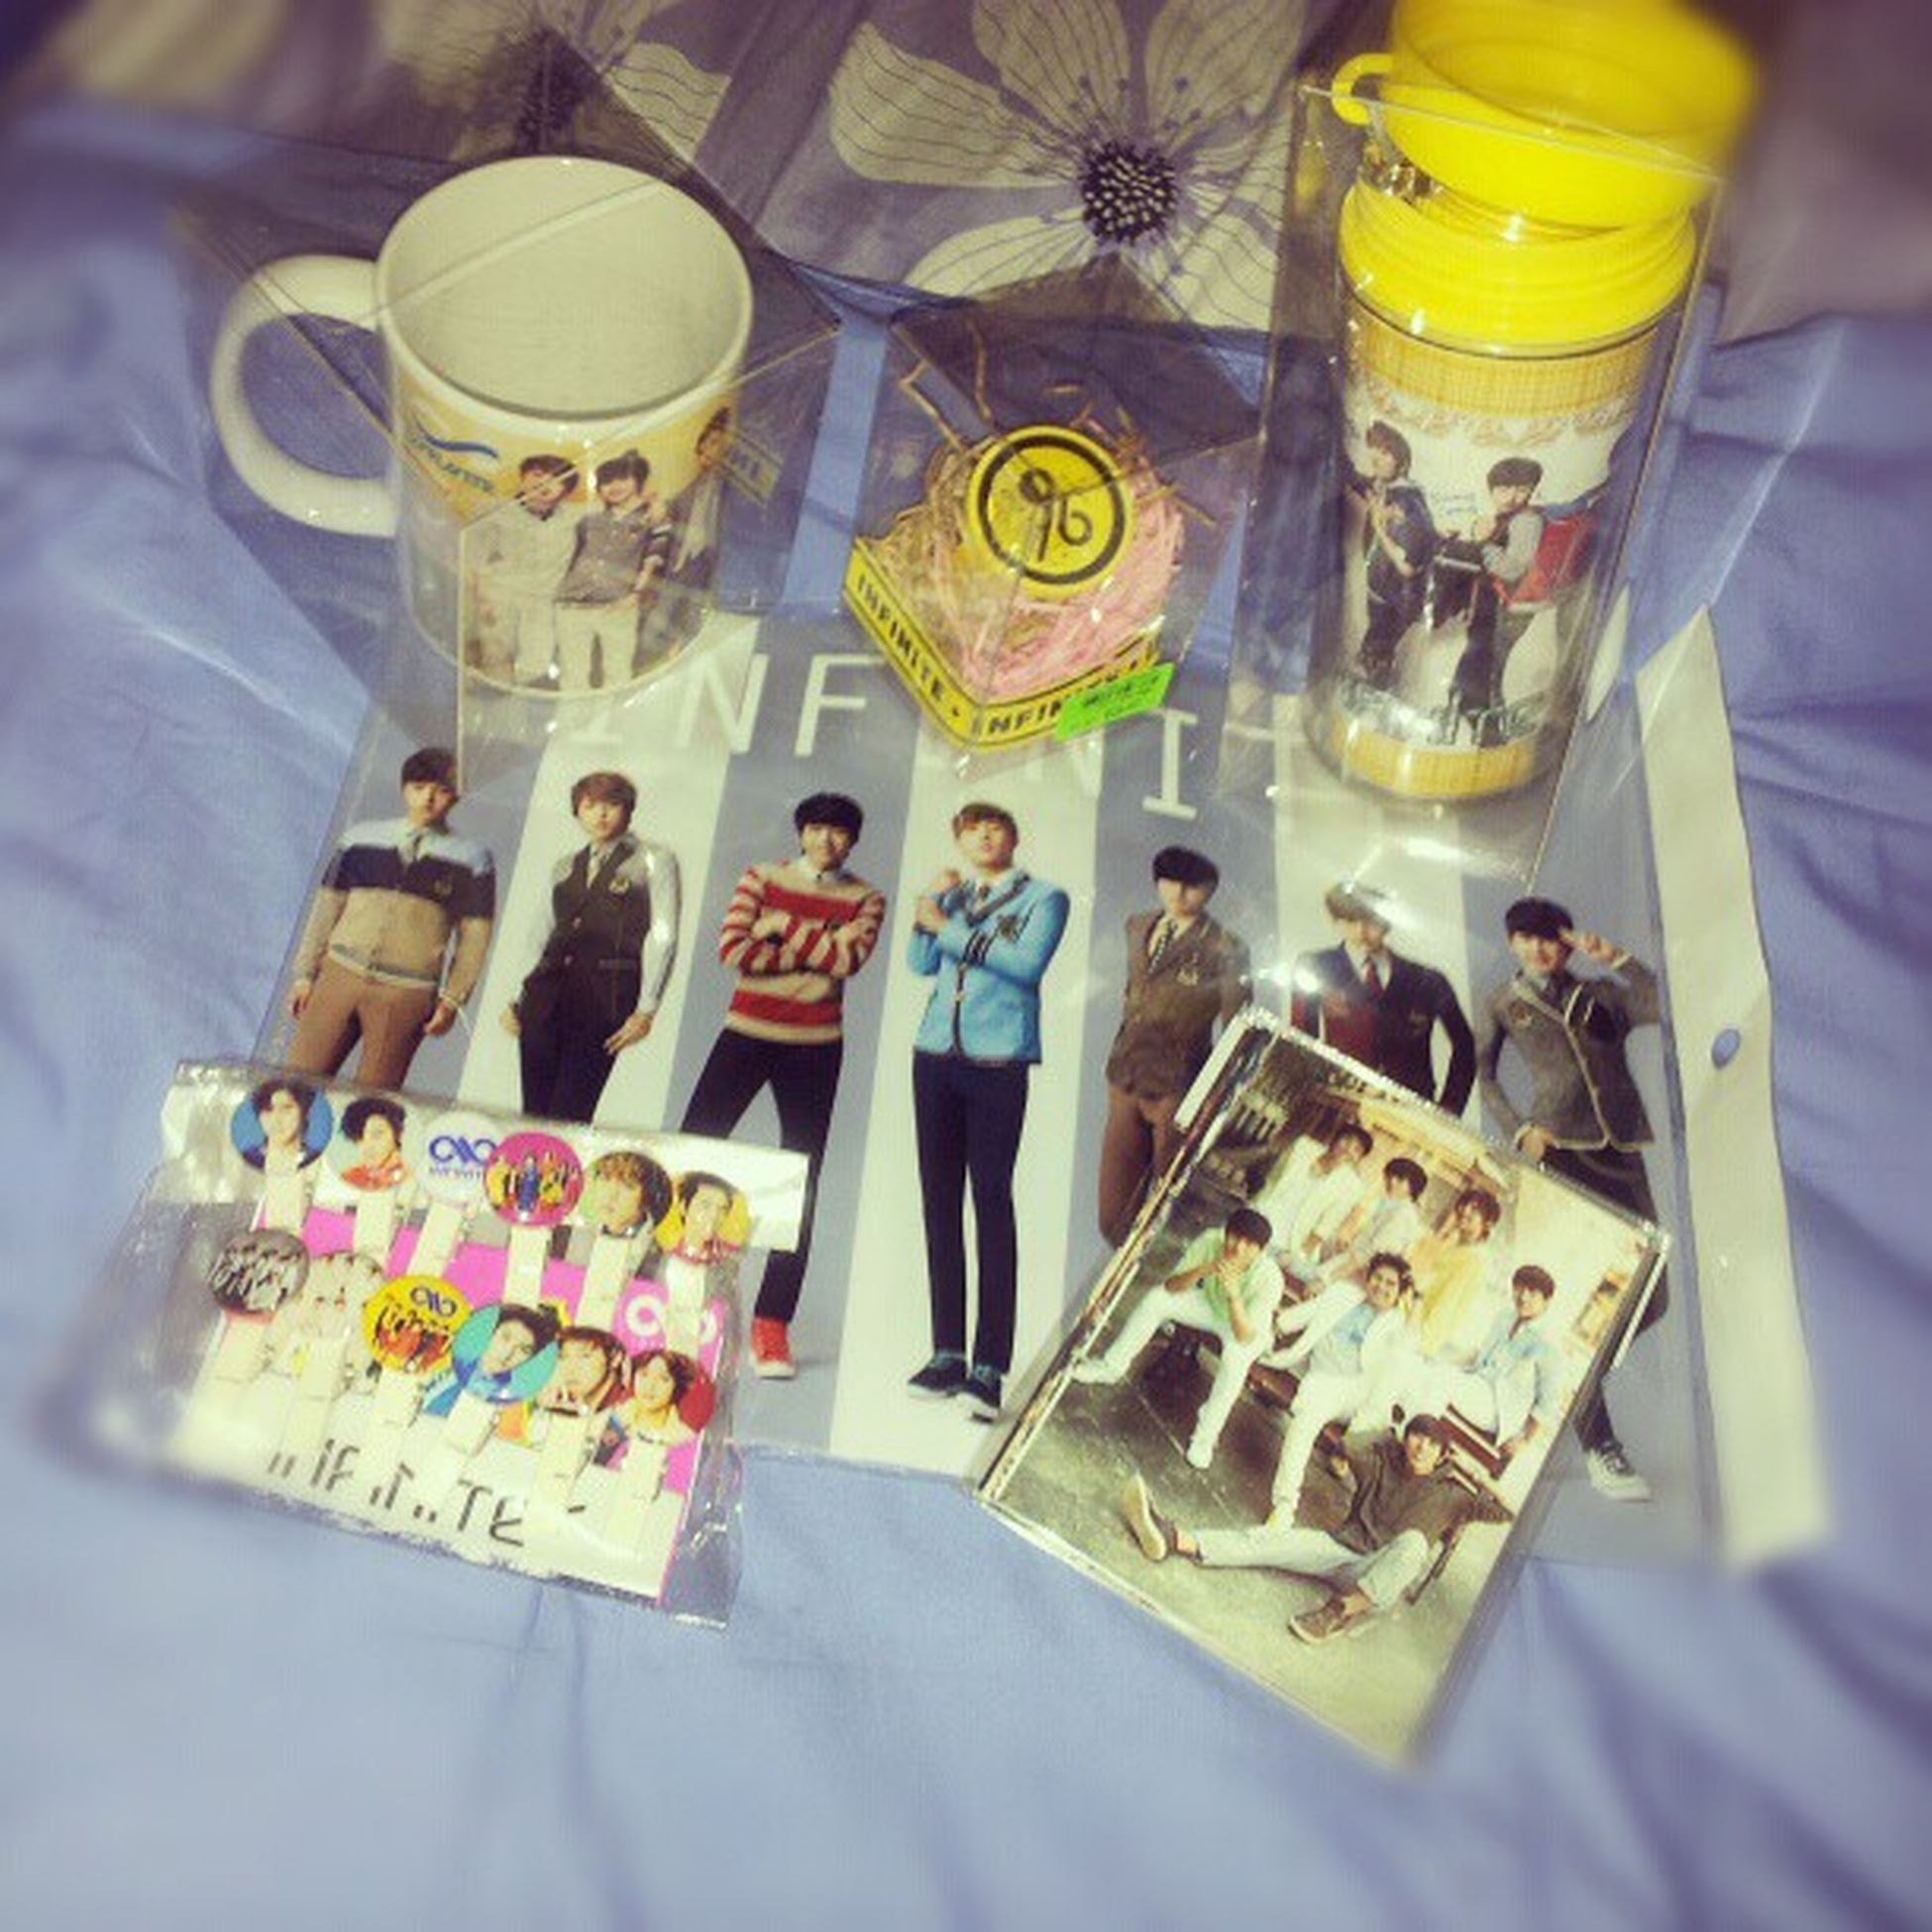 (;AAA;) Egumonina. Thank you so much, Aunty! I'll take this as your way of acknowledging my beloved boys!! ♥ 인피니트 BiggestINFINITEfan